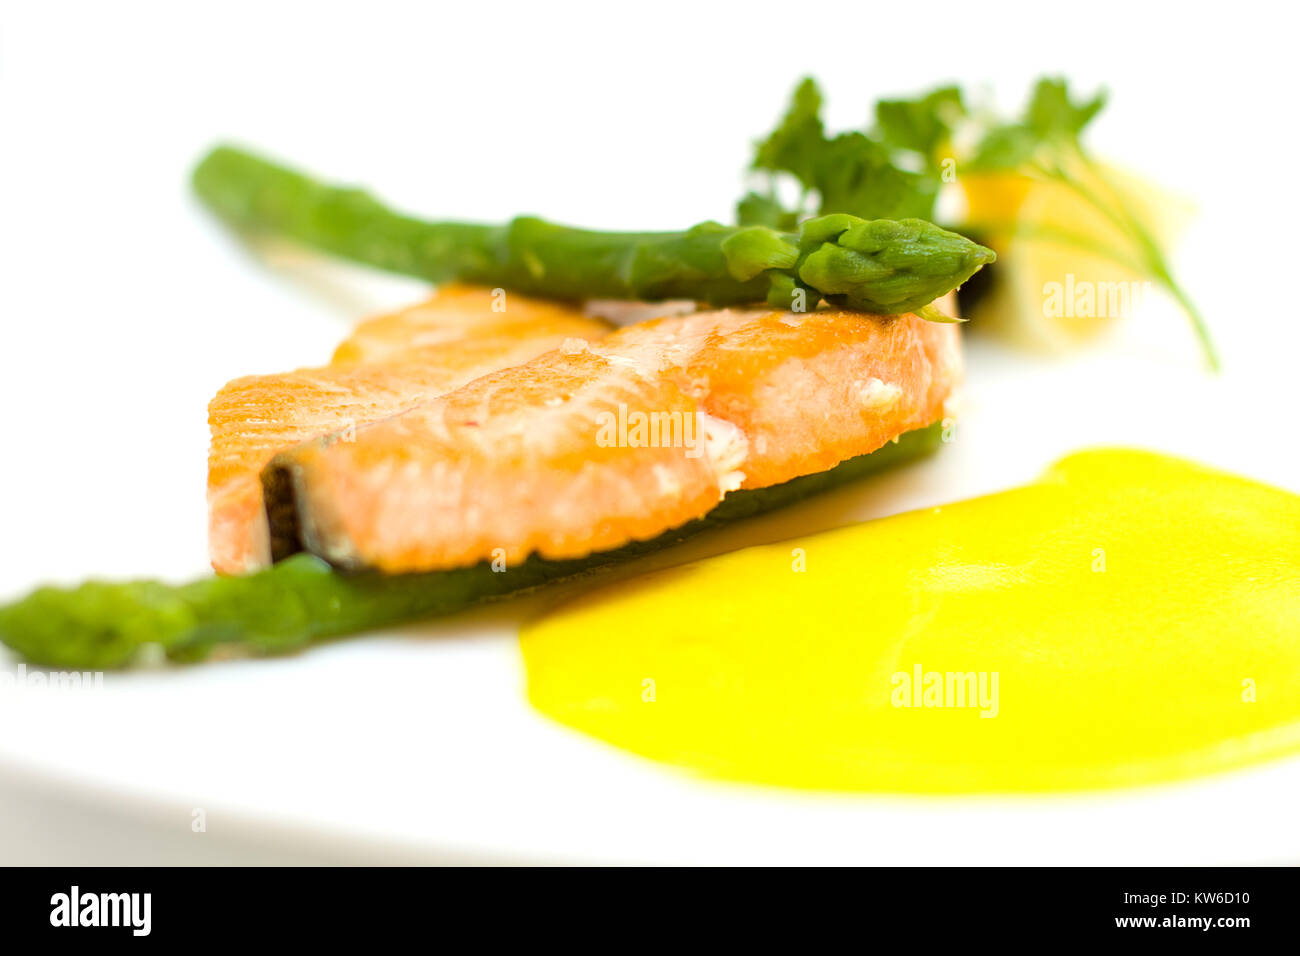 Salmon and aspargus shot with lemon, dill garnish with shalow depth of field - Stock Image